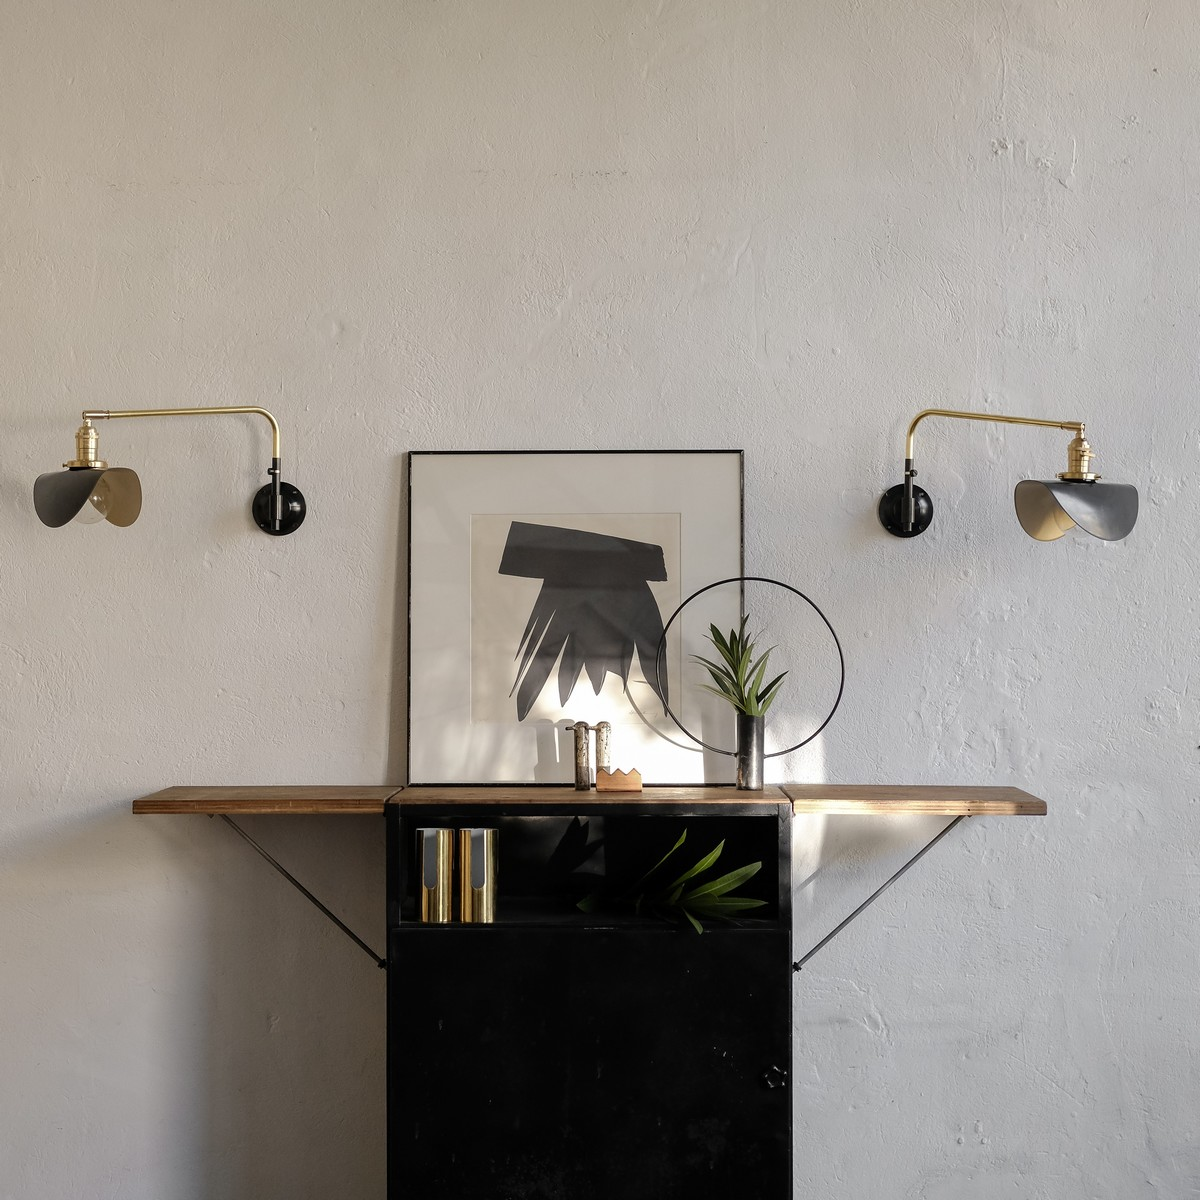 French Swing Out Wall Sconce Light